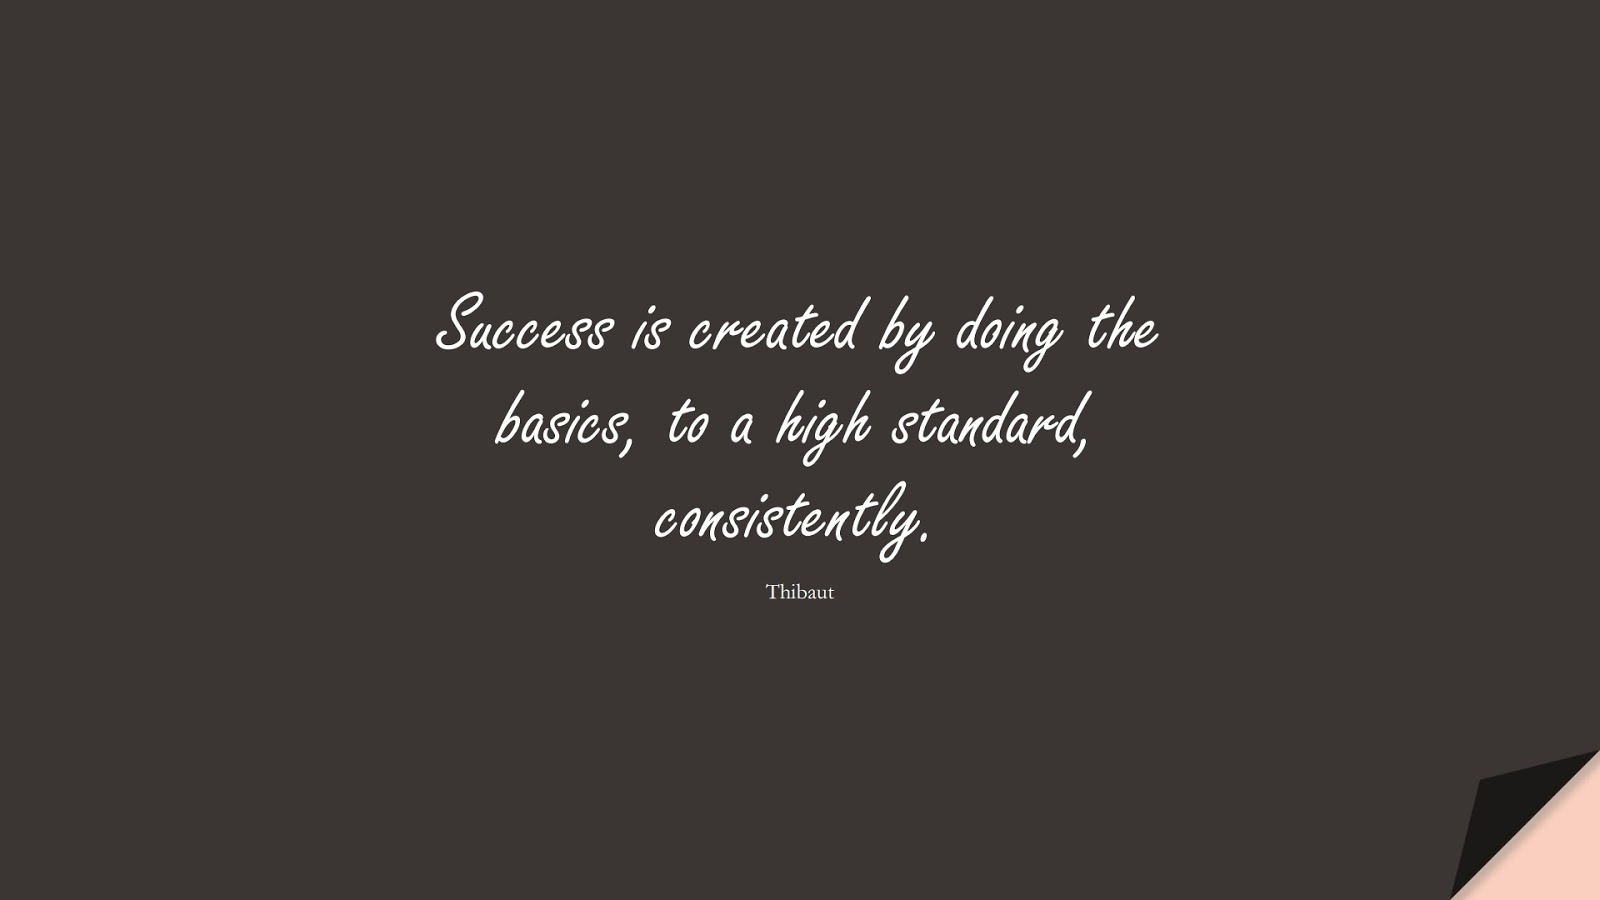 Success is created by doing the basics, to a high standard, consistently. (Thibaut);  #SuccessQuotes